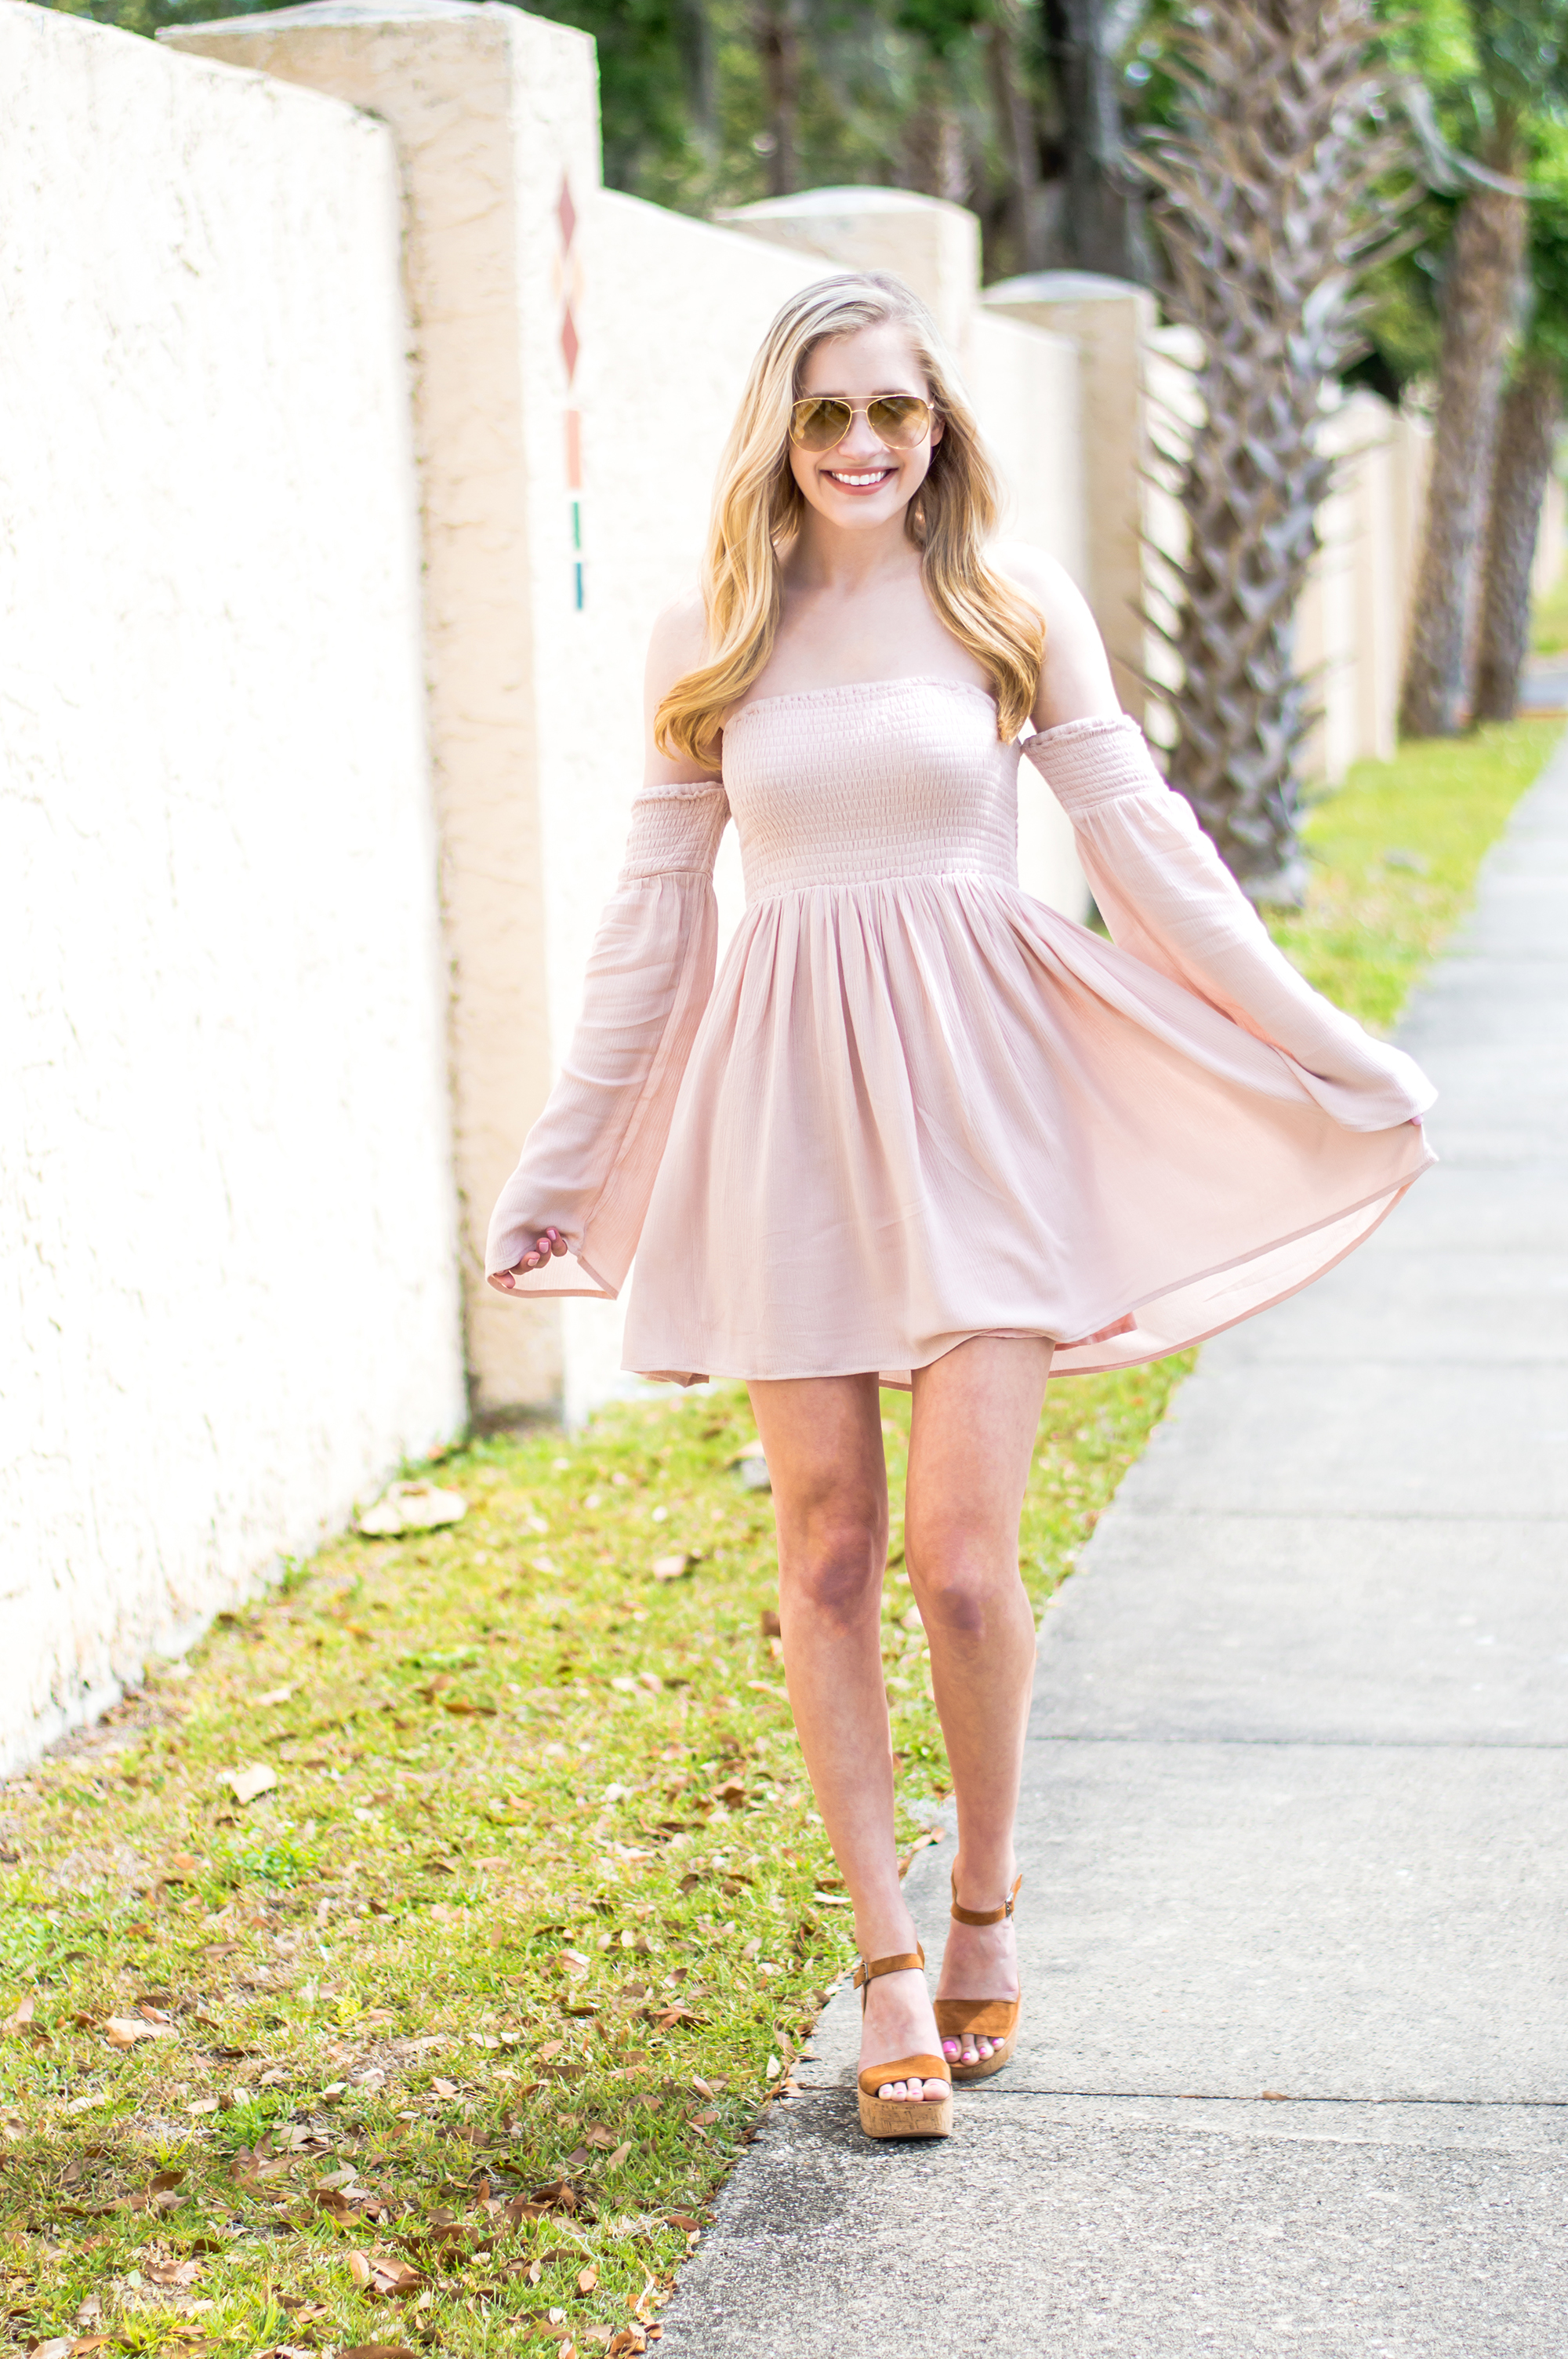 styelled-blog-elle-elisabeth-fashion-style-blogger-florida-tobi-clothing-sundress-blush-dress-burberry-sunglasses-aviator-dolce-vita-03